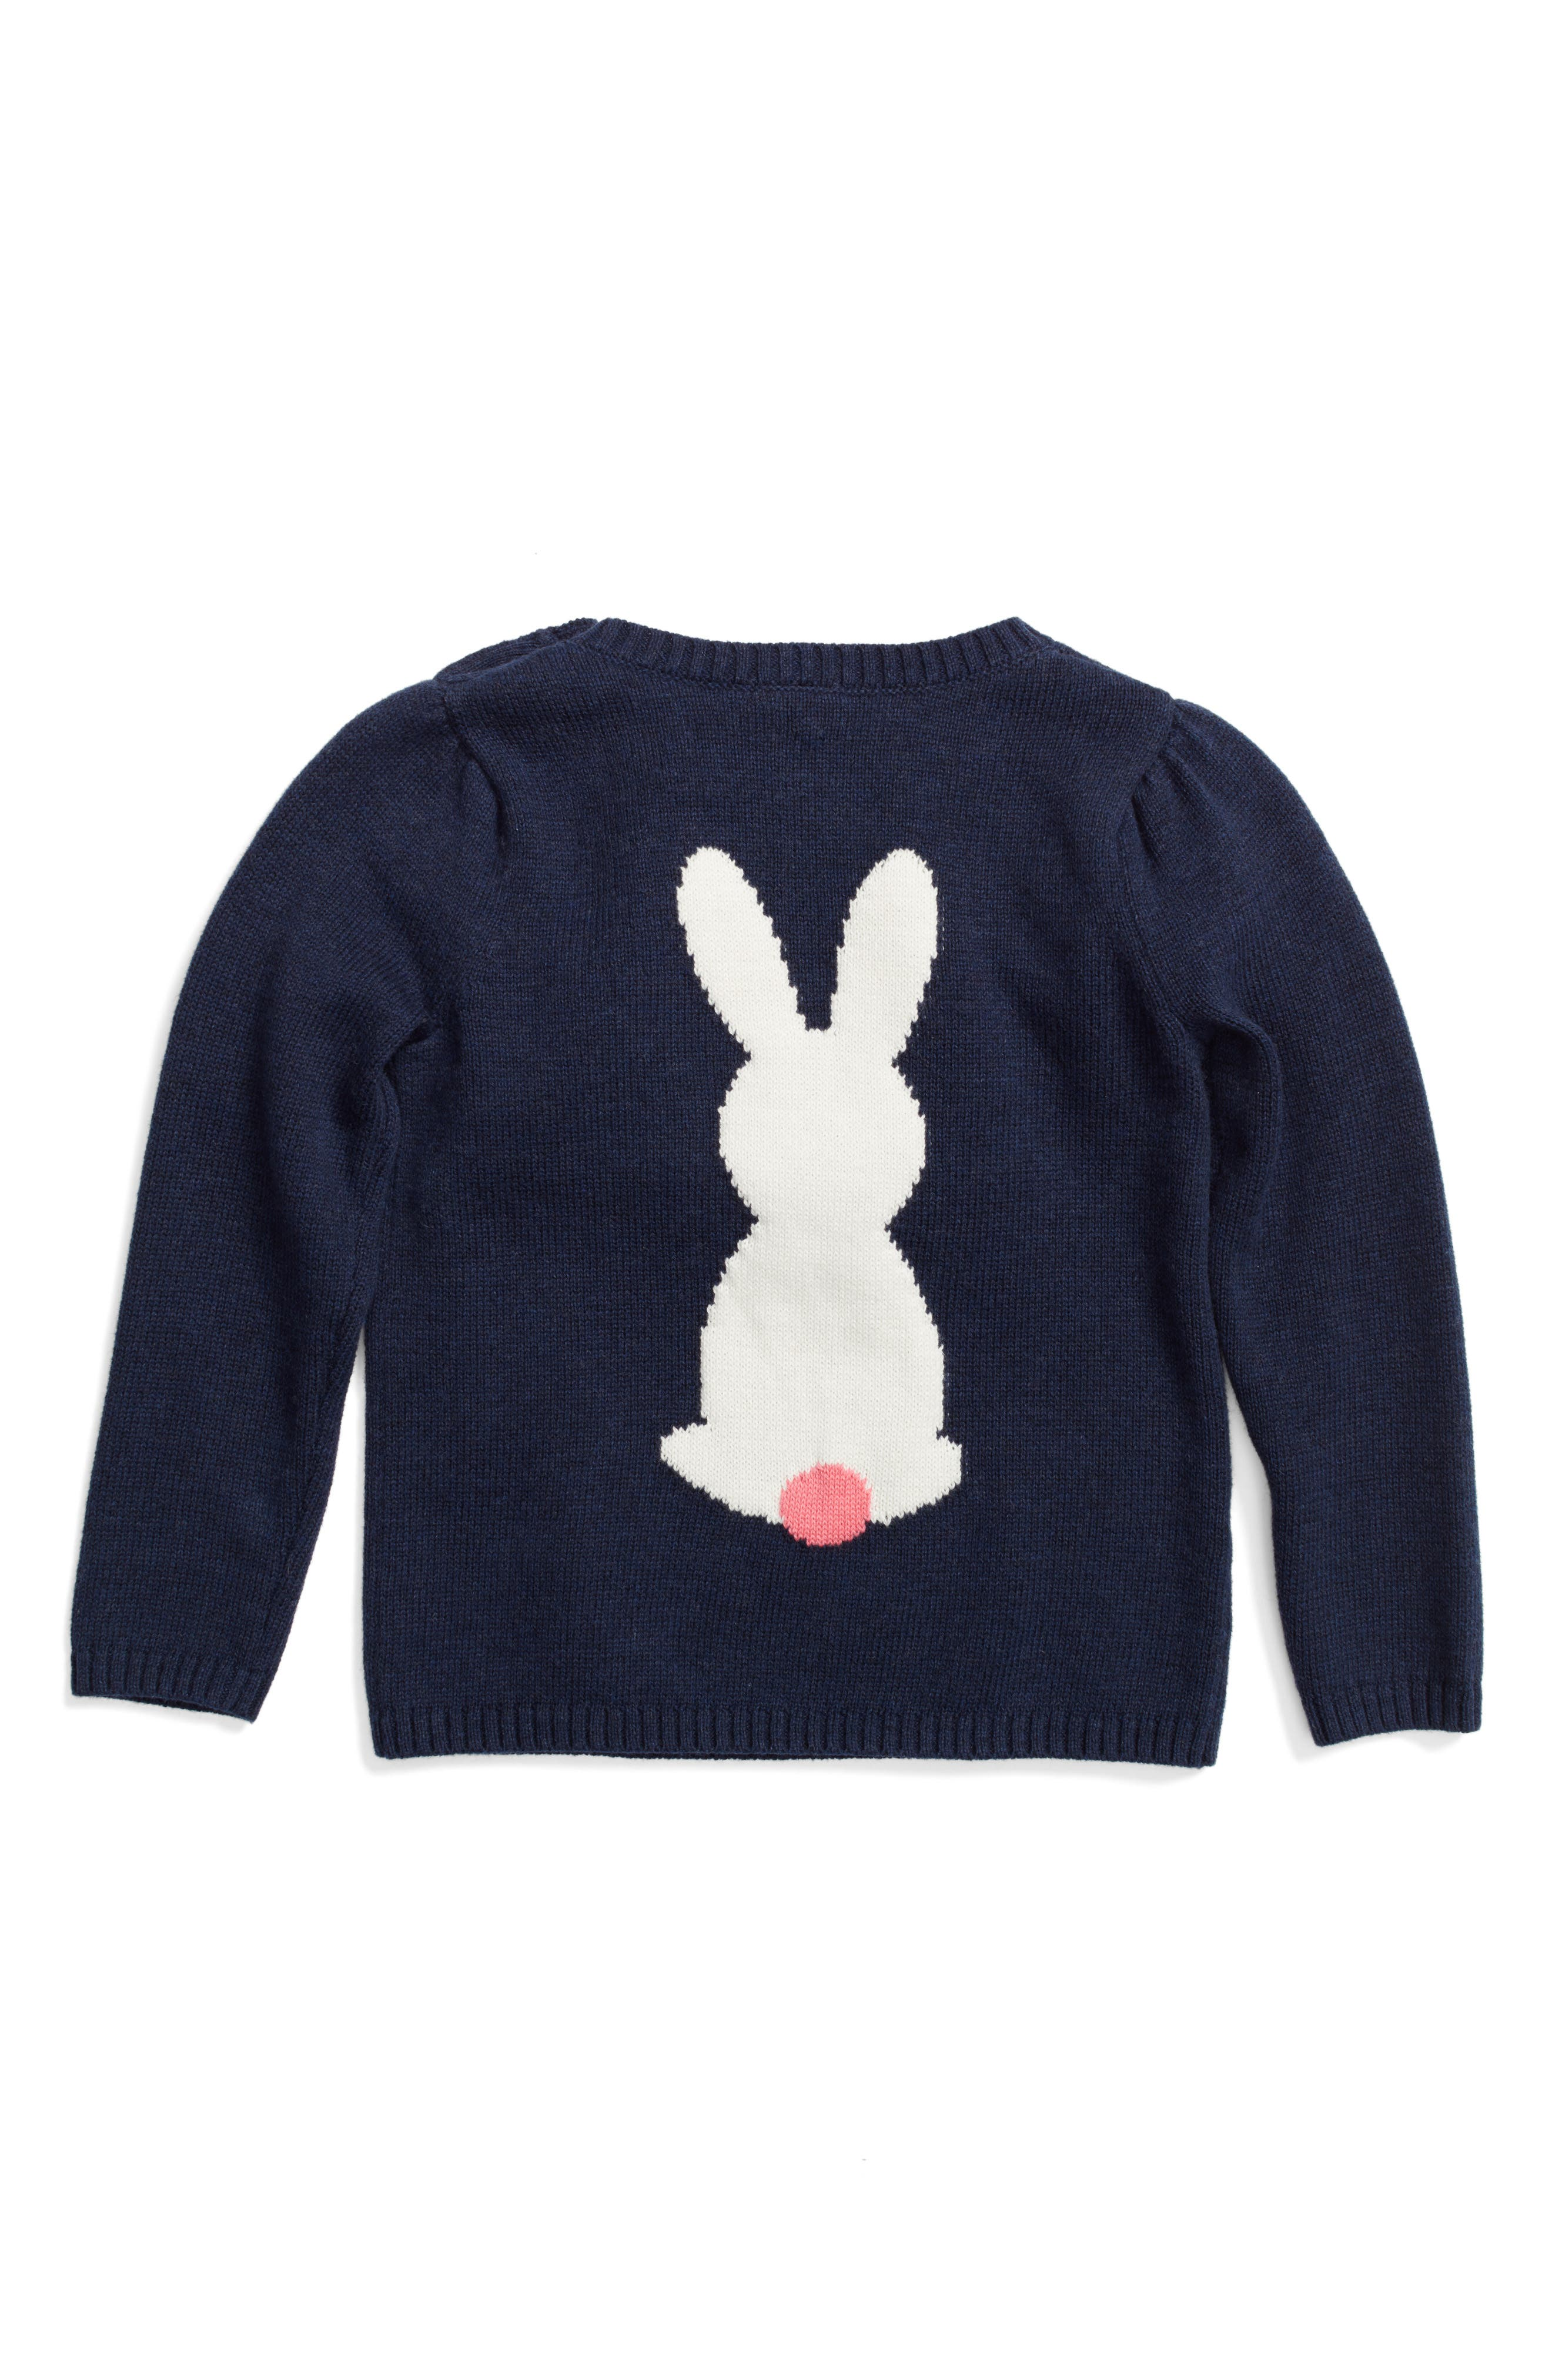 Bunny Sweater,                         Main,                         color, 410